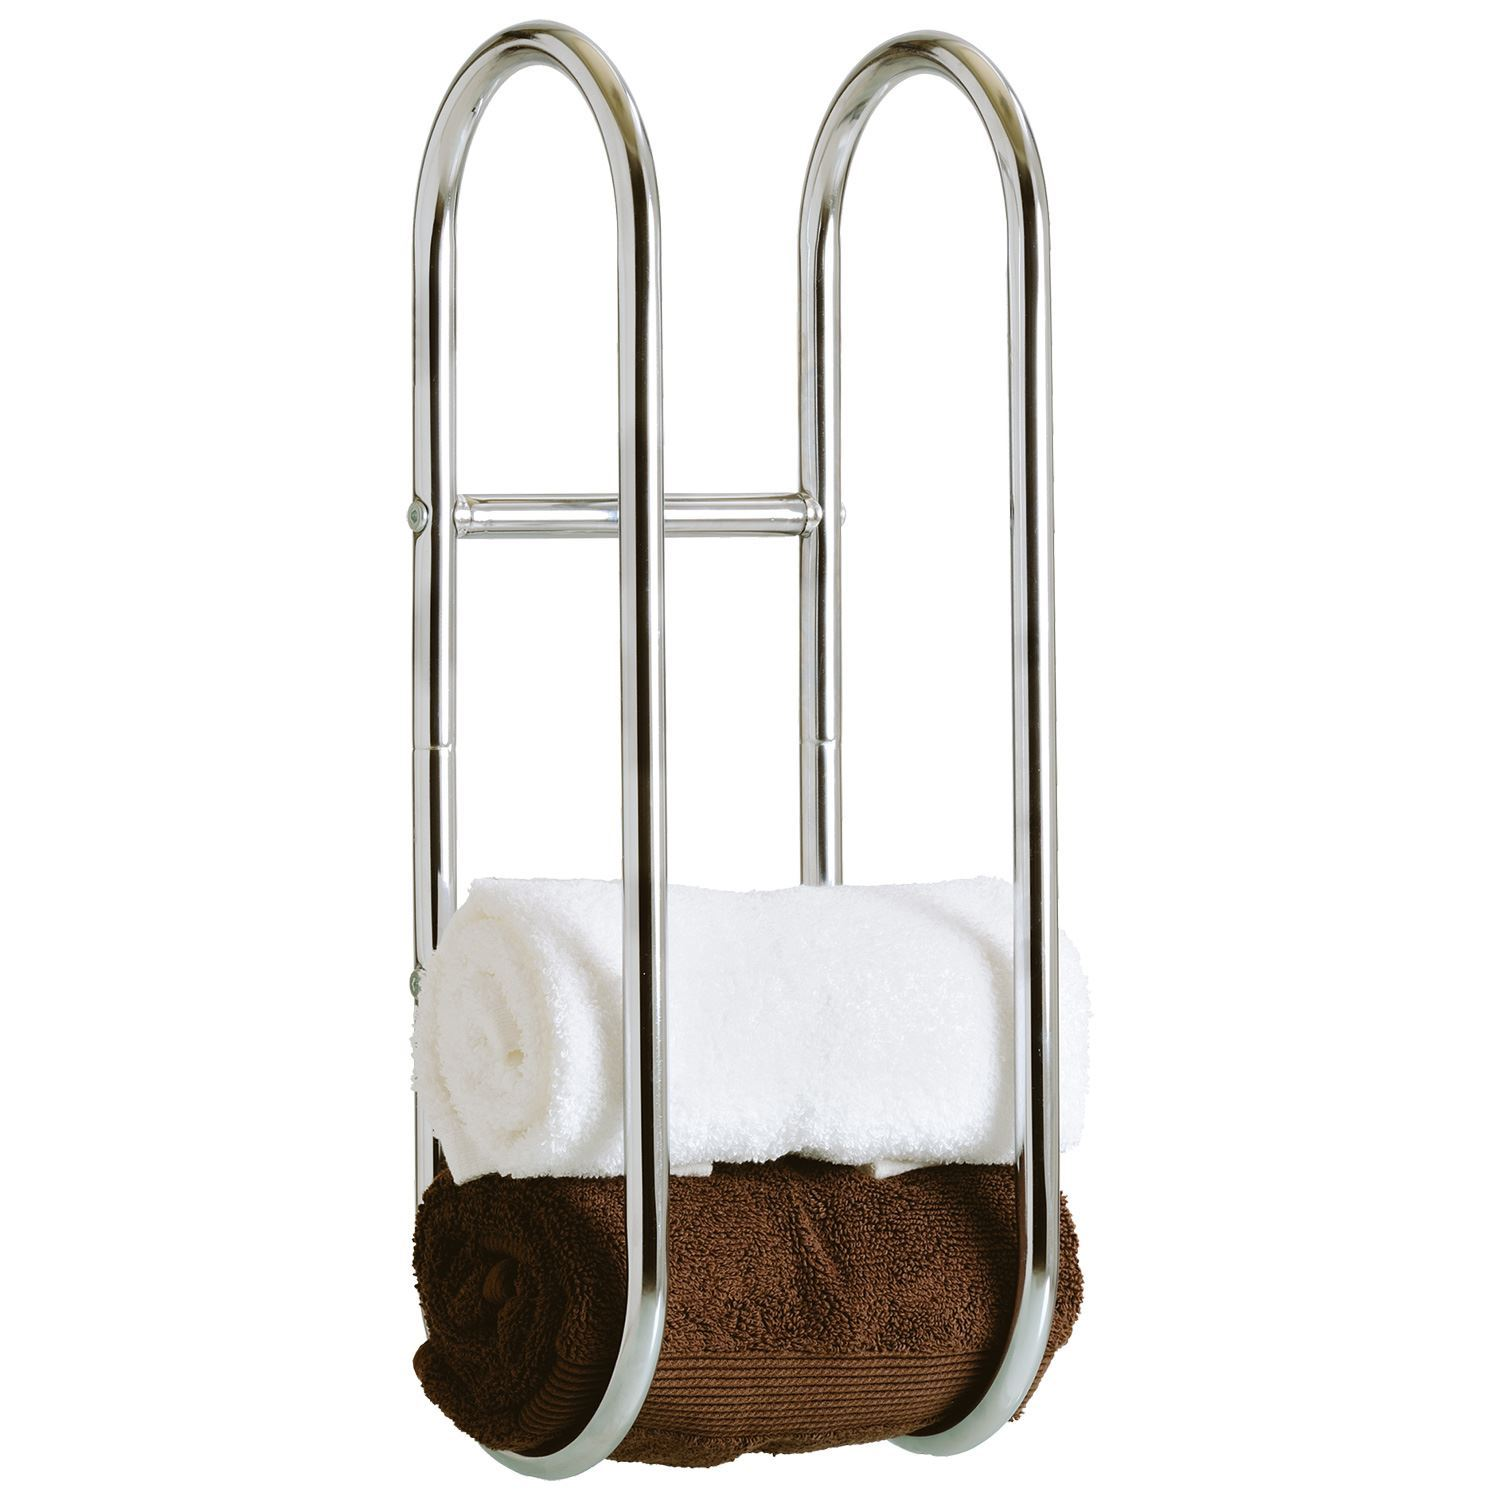 Hand Towels Holder: Chrome Wall Mounted Hand Towel Ring Bathroom Storage Rail